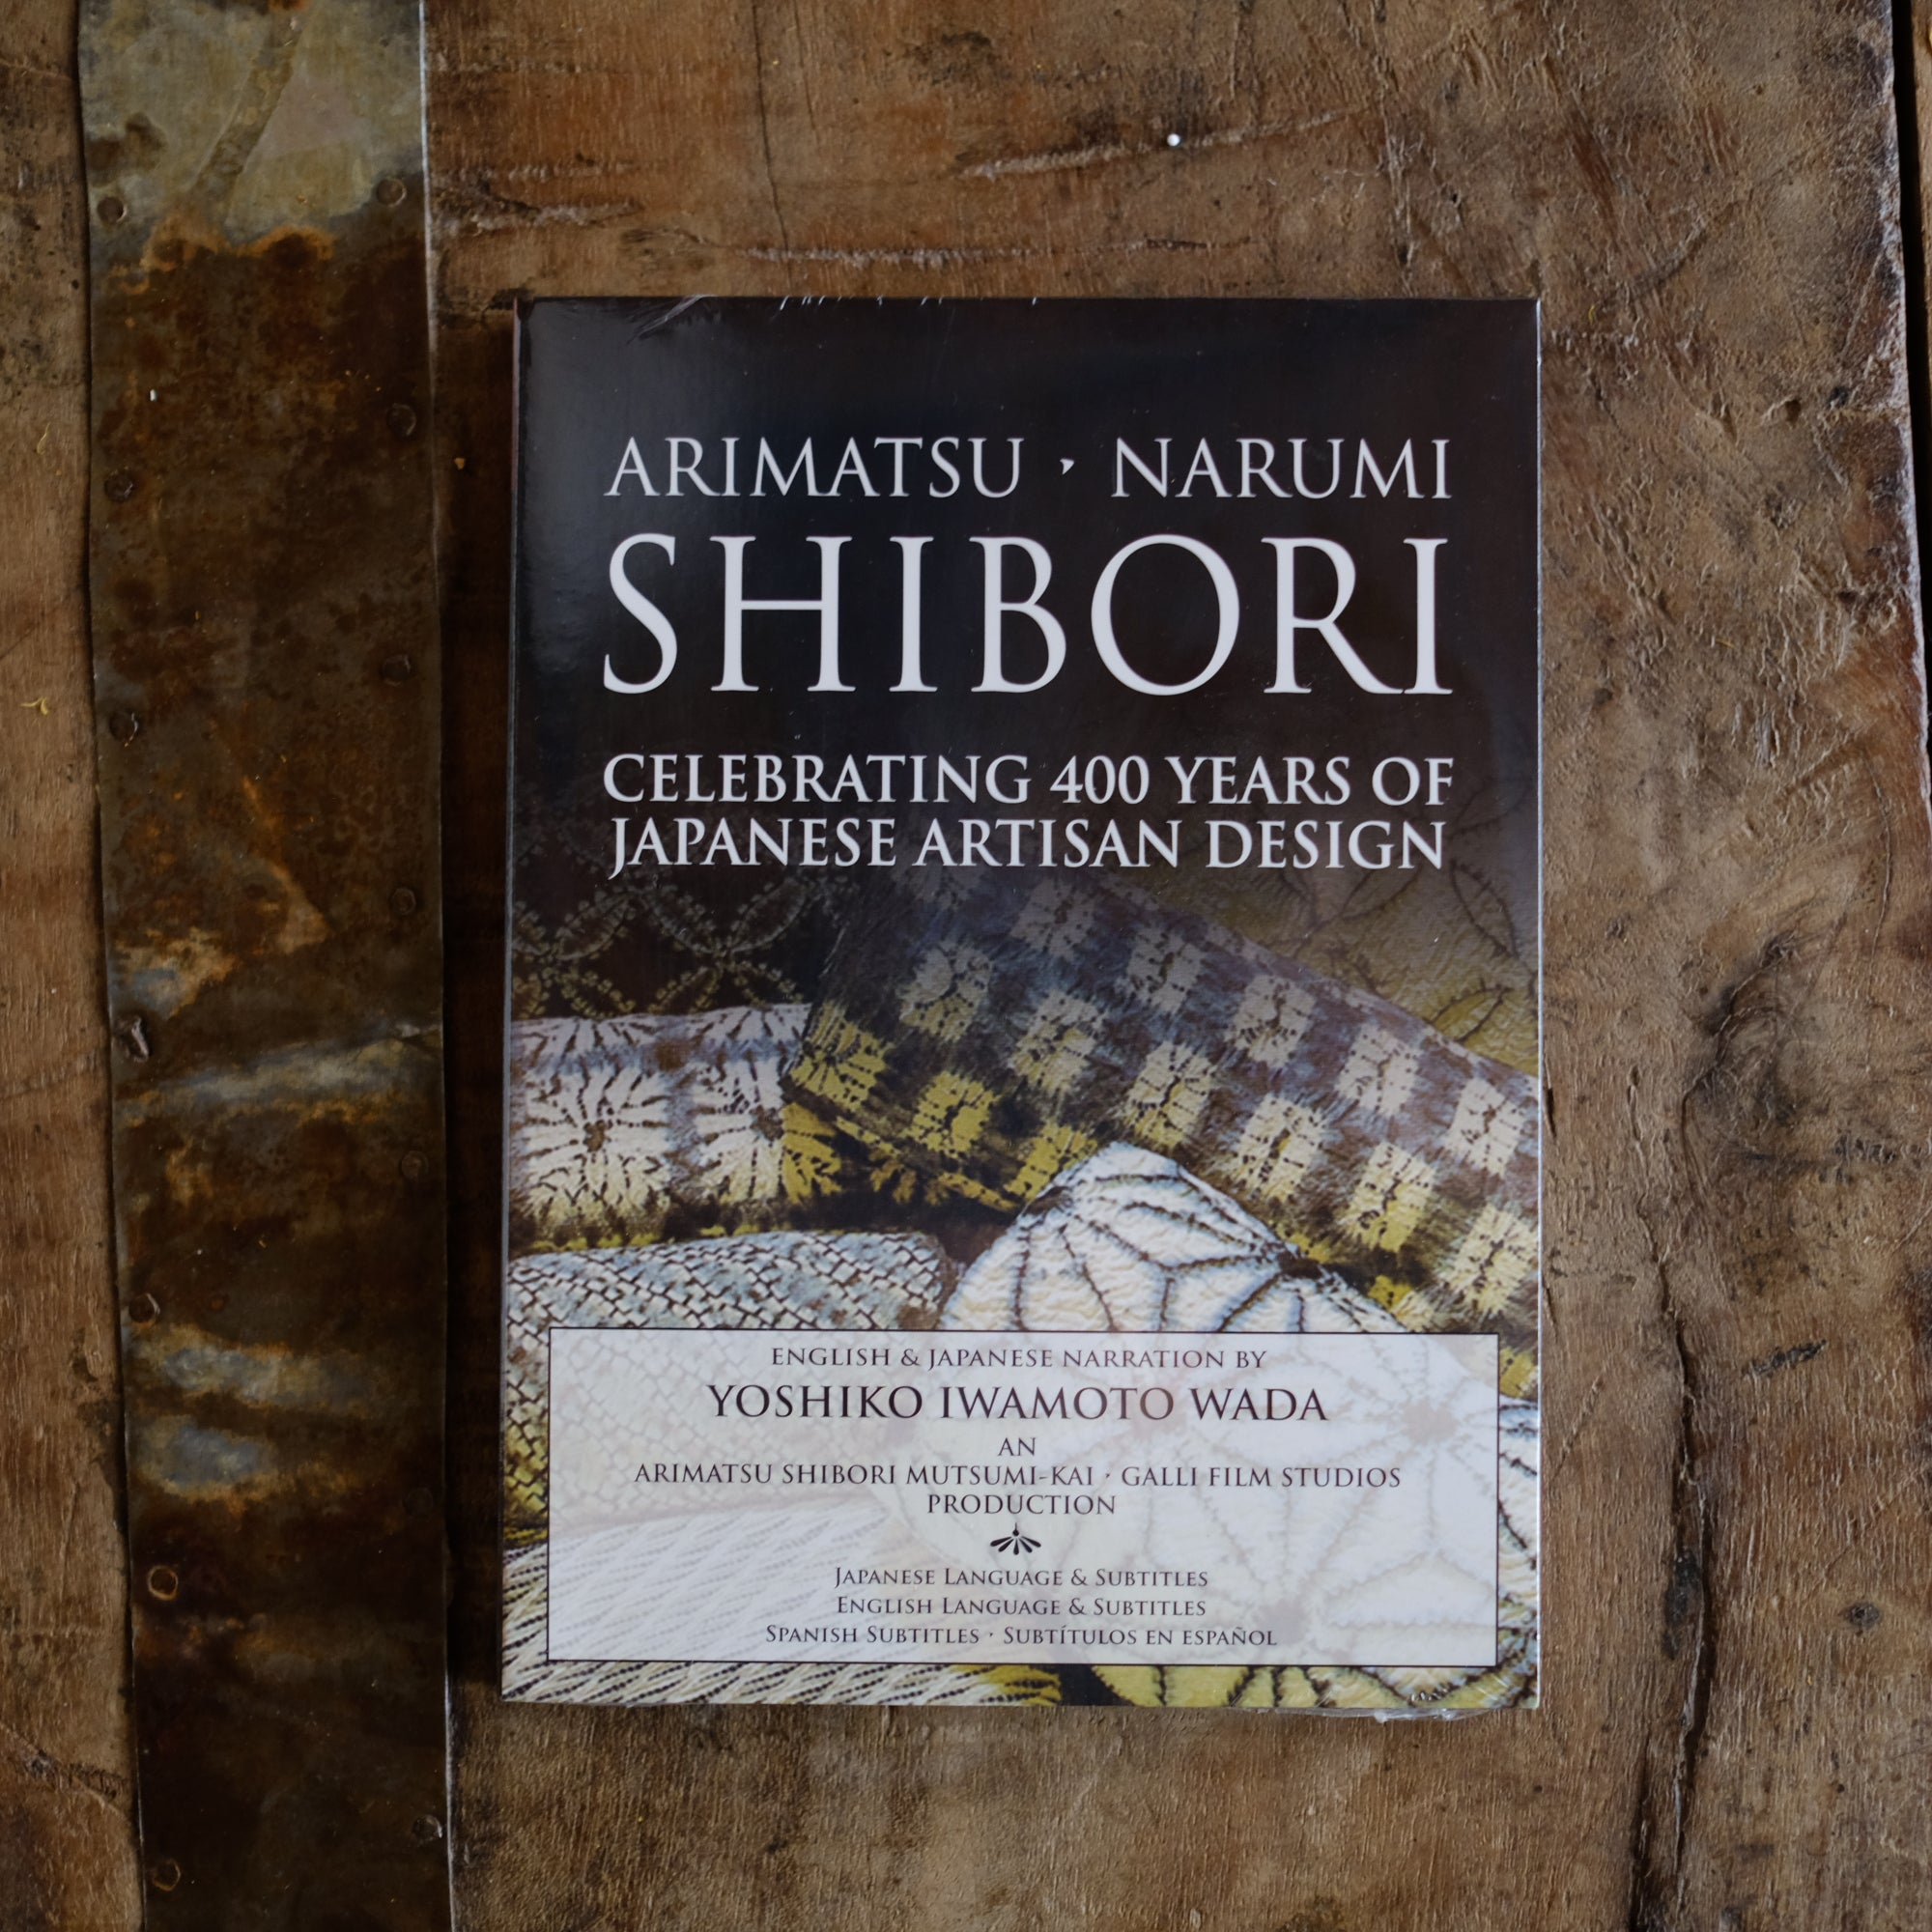 Arimatsu Narumi Shibori: Celebrating 400 Years of Japanese Artisan Design - SOLD OUT